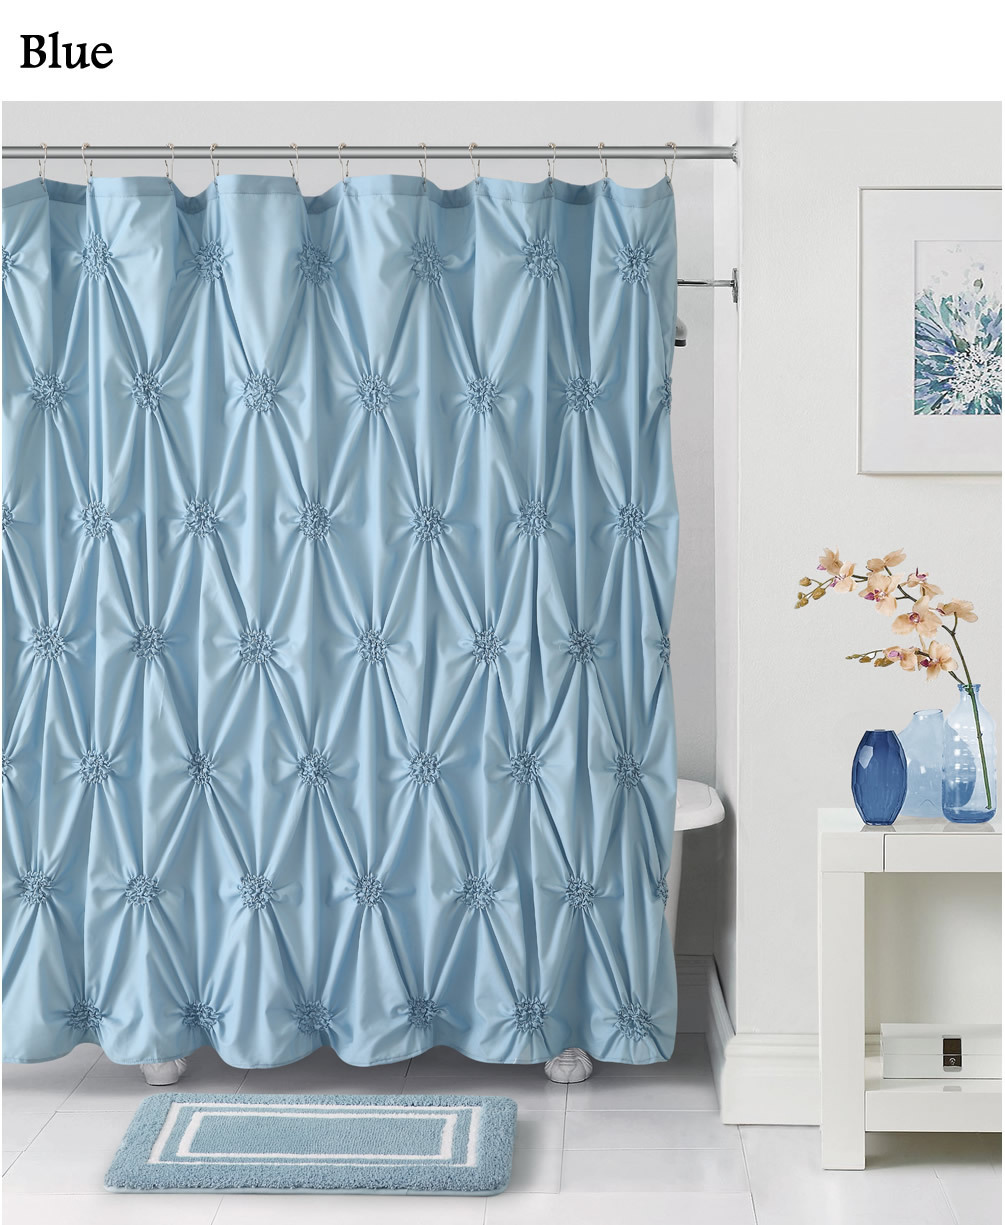 very consistent and shower curtain and bath mat set buyma monogram shower curtain and bath mat set personalized